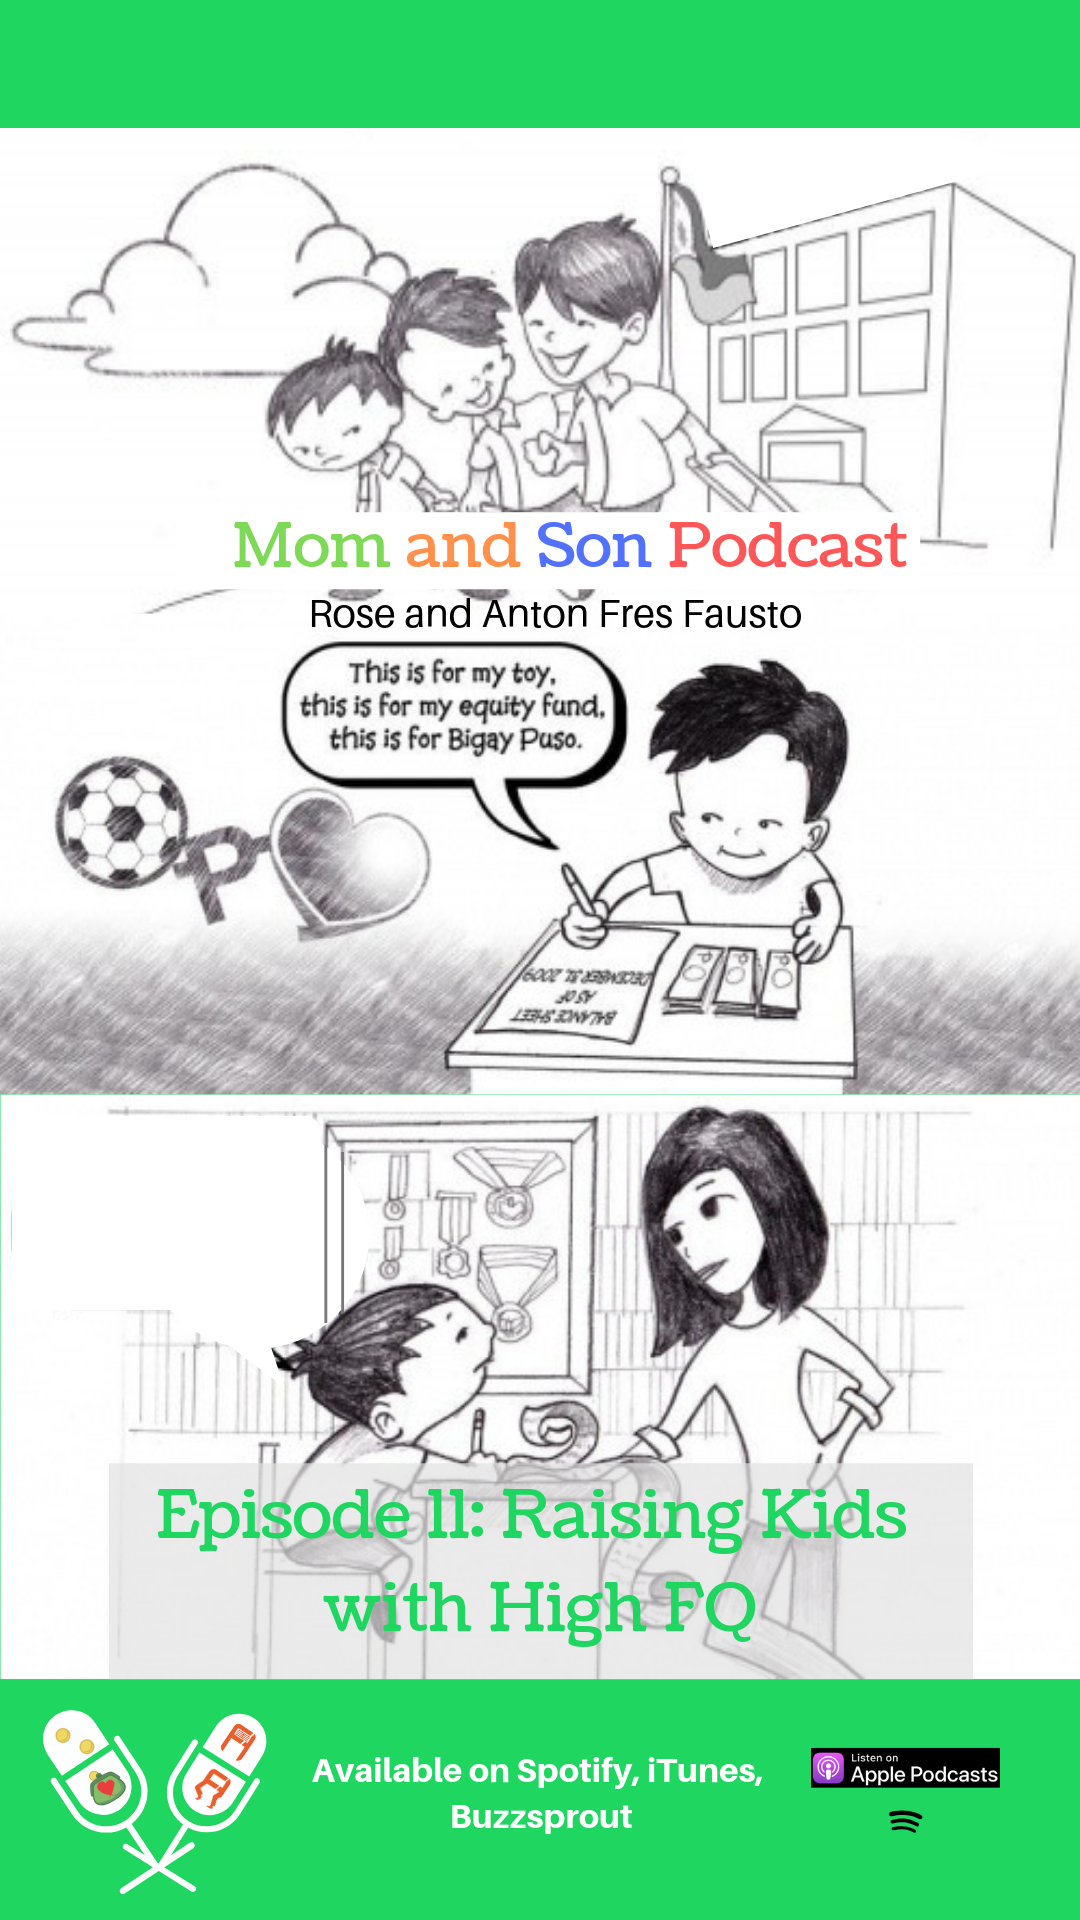 mom-and-son-podcast-2-1